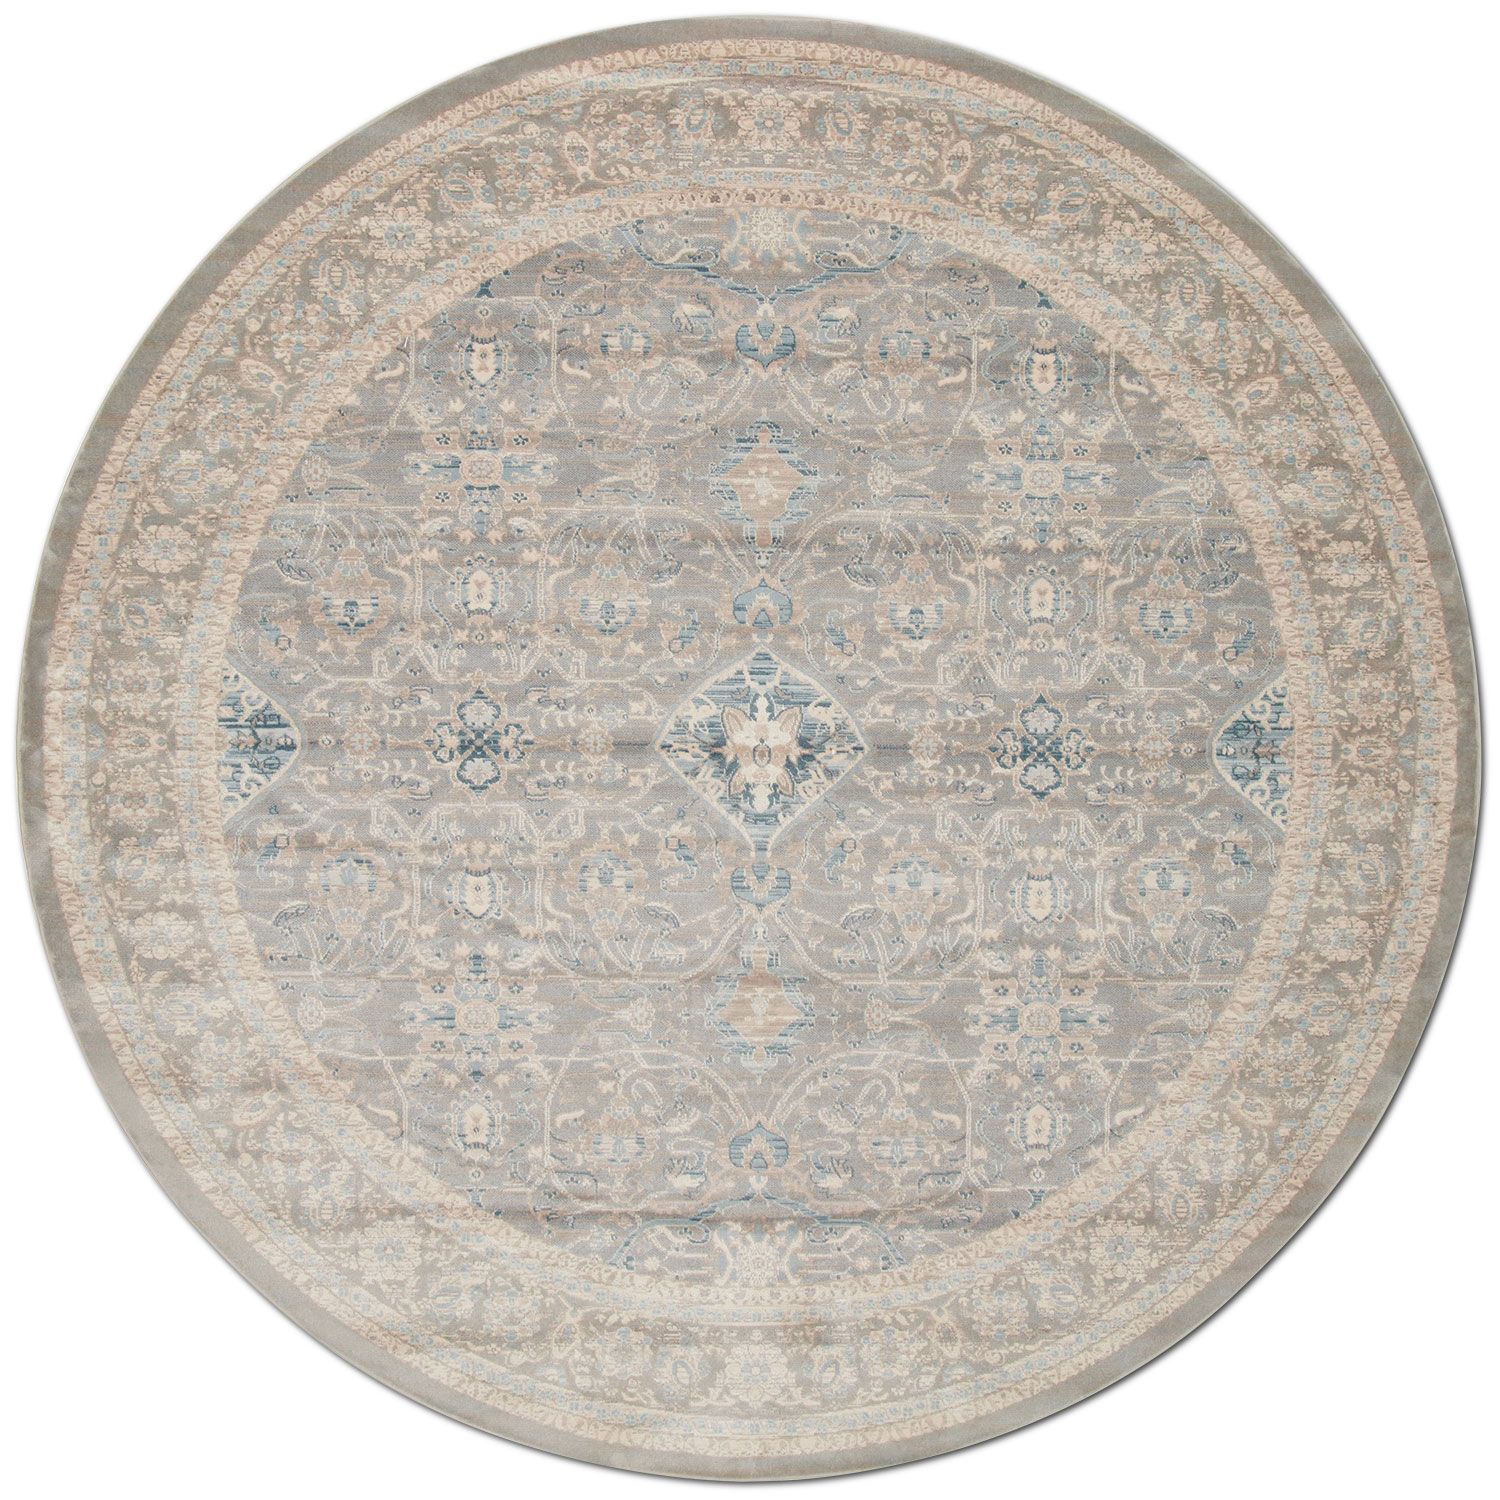 Ella Rose 8' Round Rug - Steel